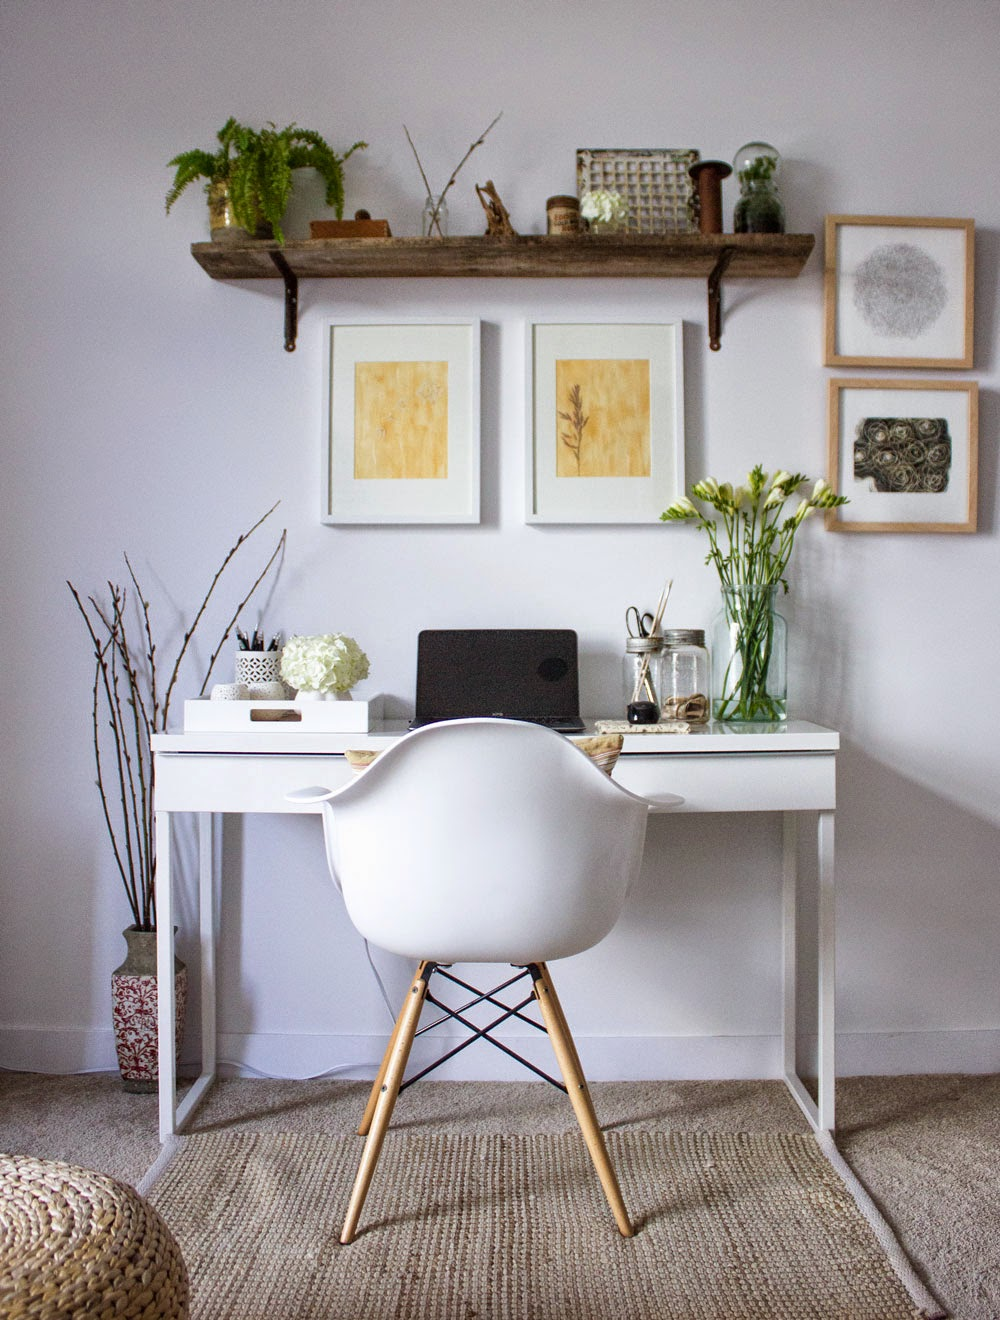 refreshed spring home workspacejpg - Simple Home Office